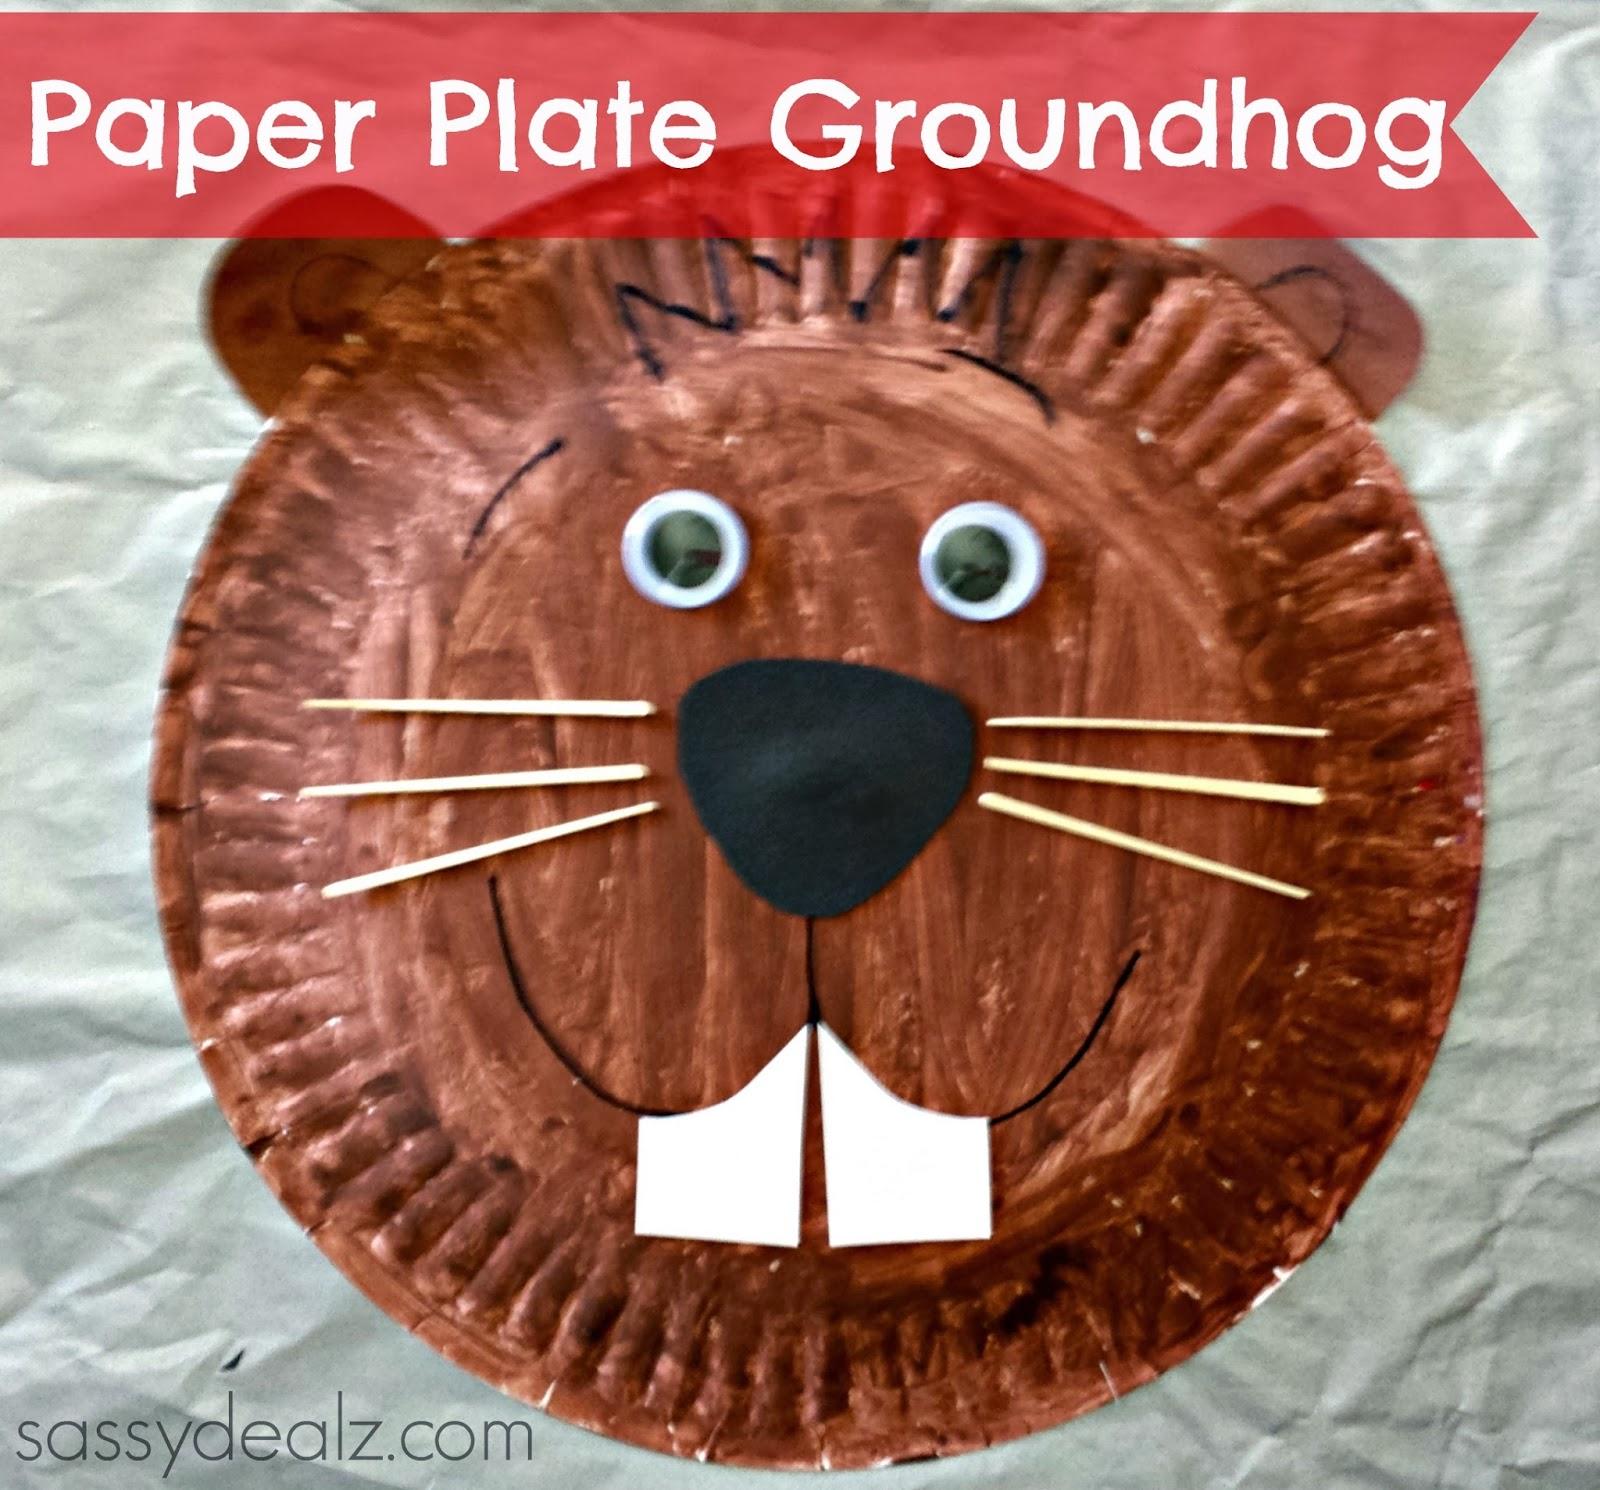 Groundhog Paper Plate Craft For Kids